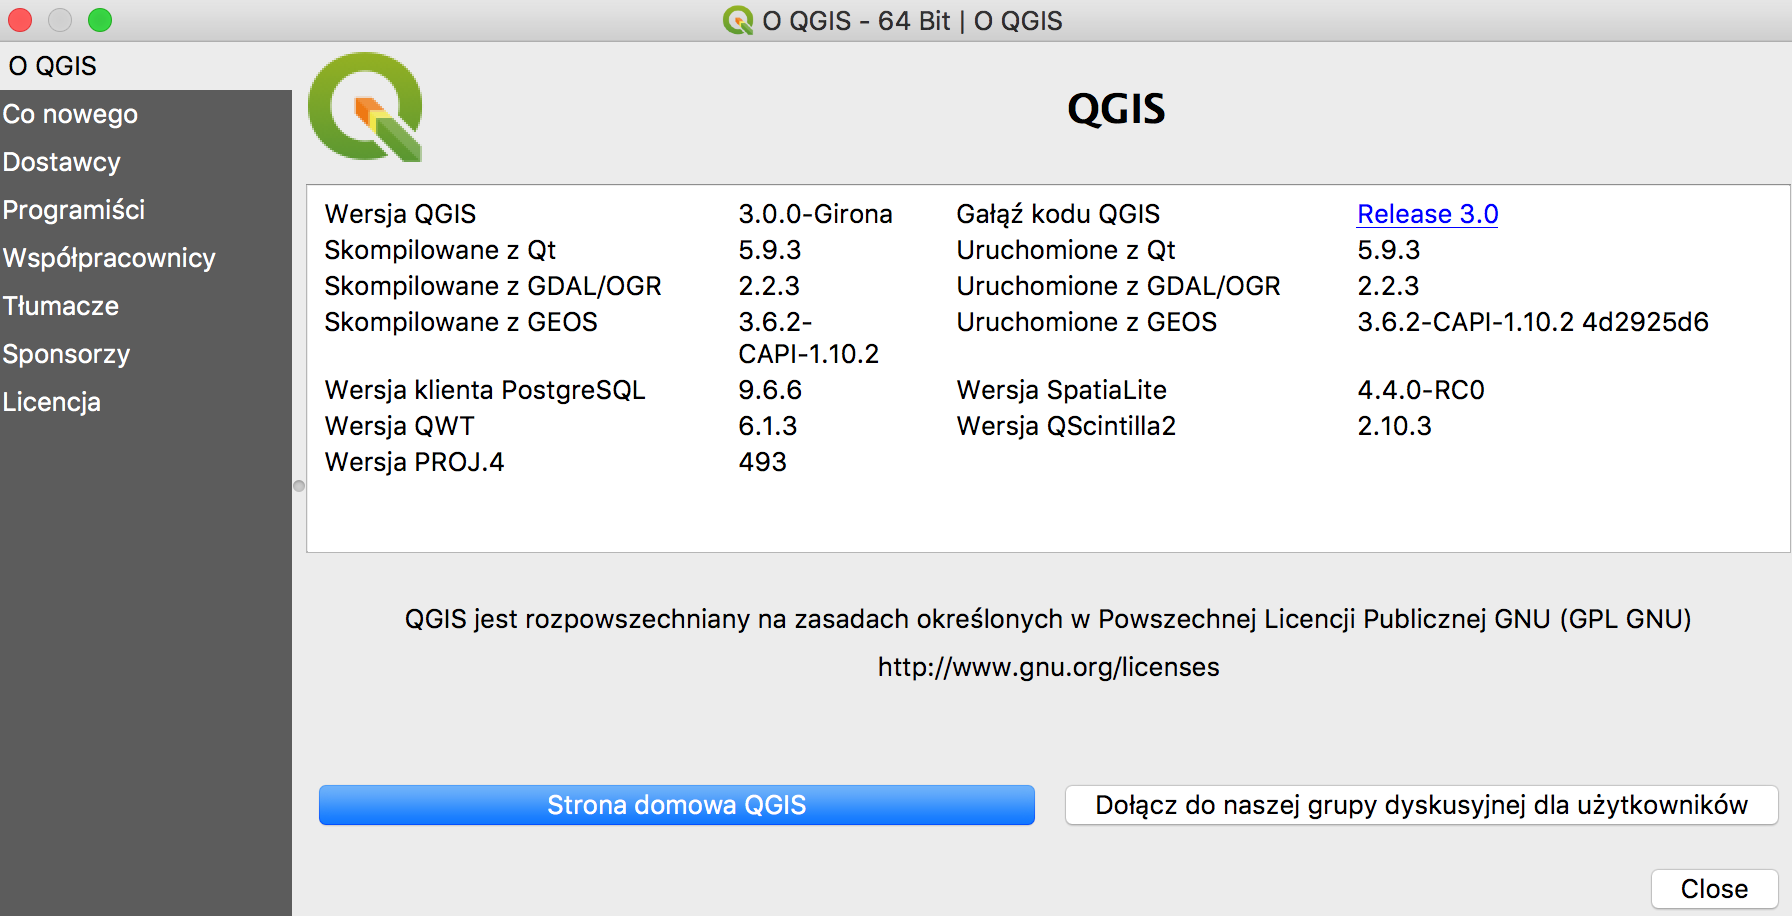 How To Install Gdal Mac